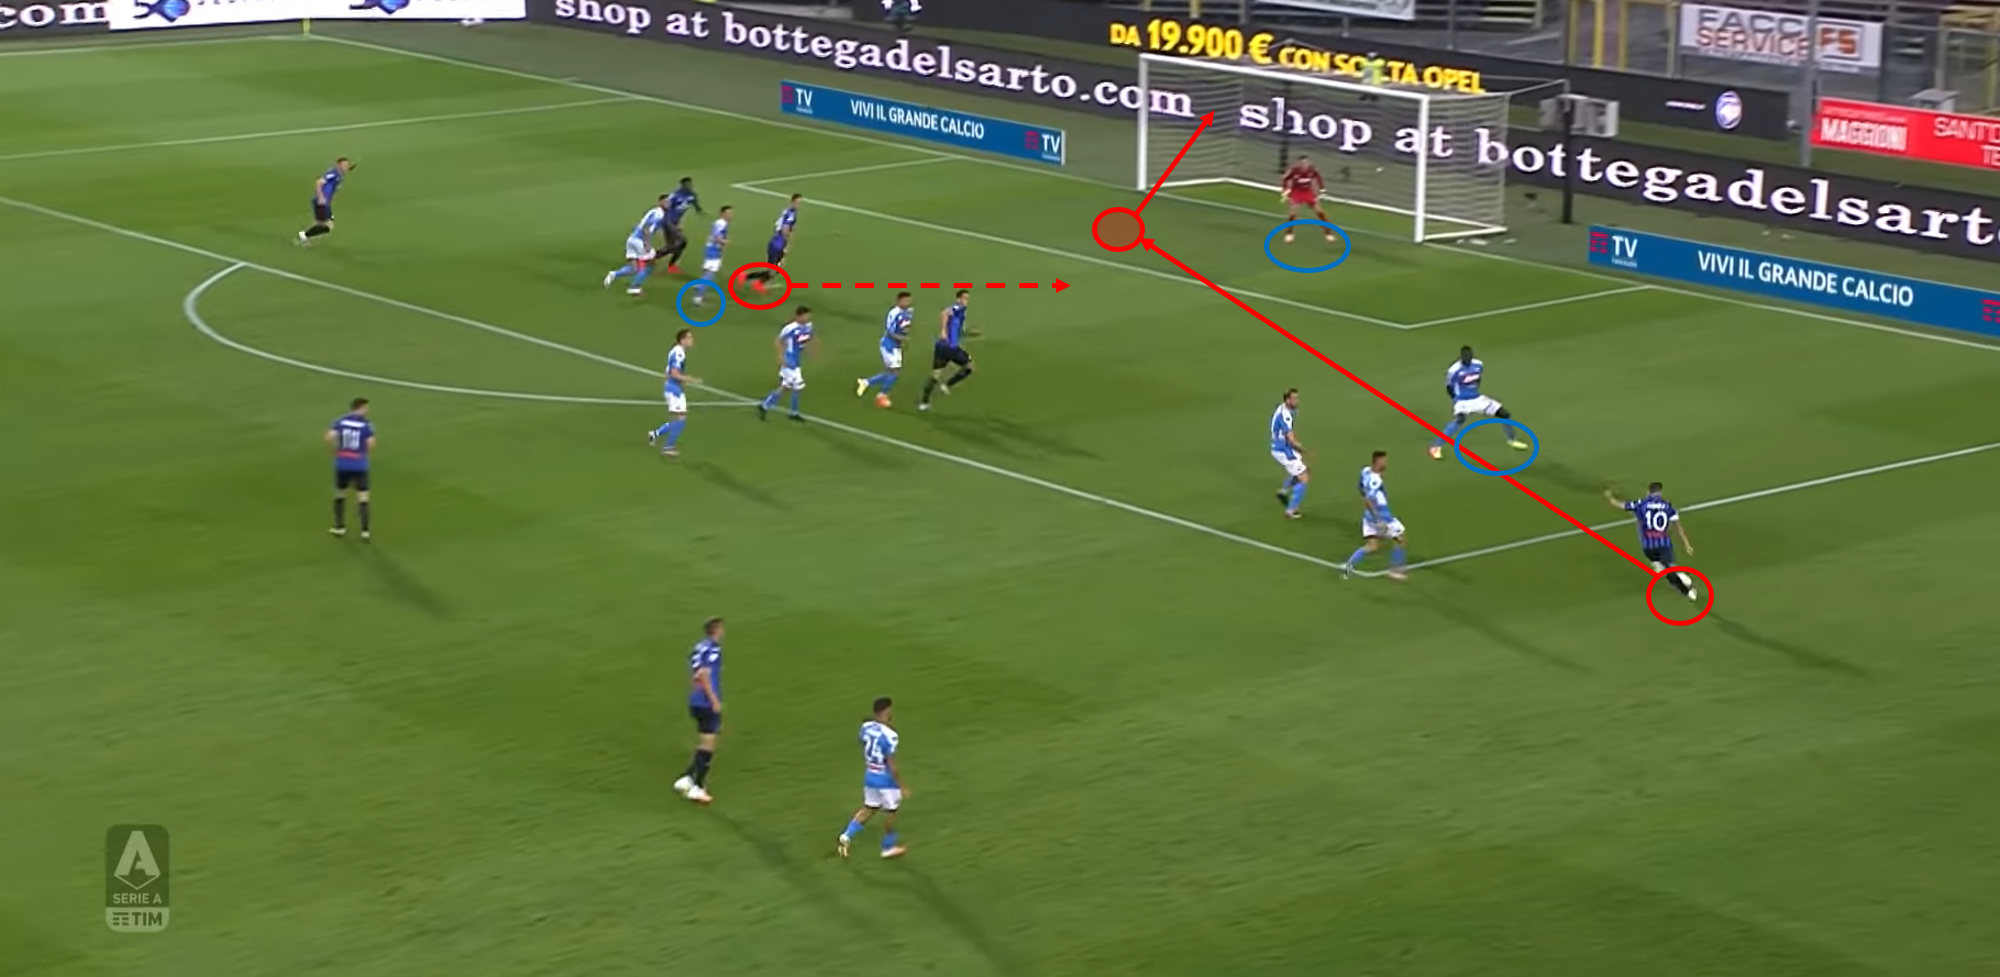 Serie A 2019/20: Atalanta vs Napoli – tactical analysis - tactics